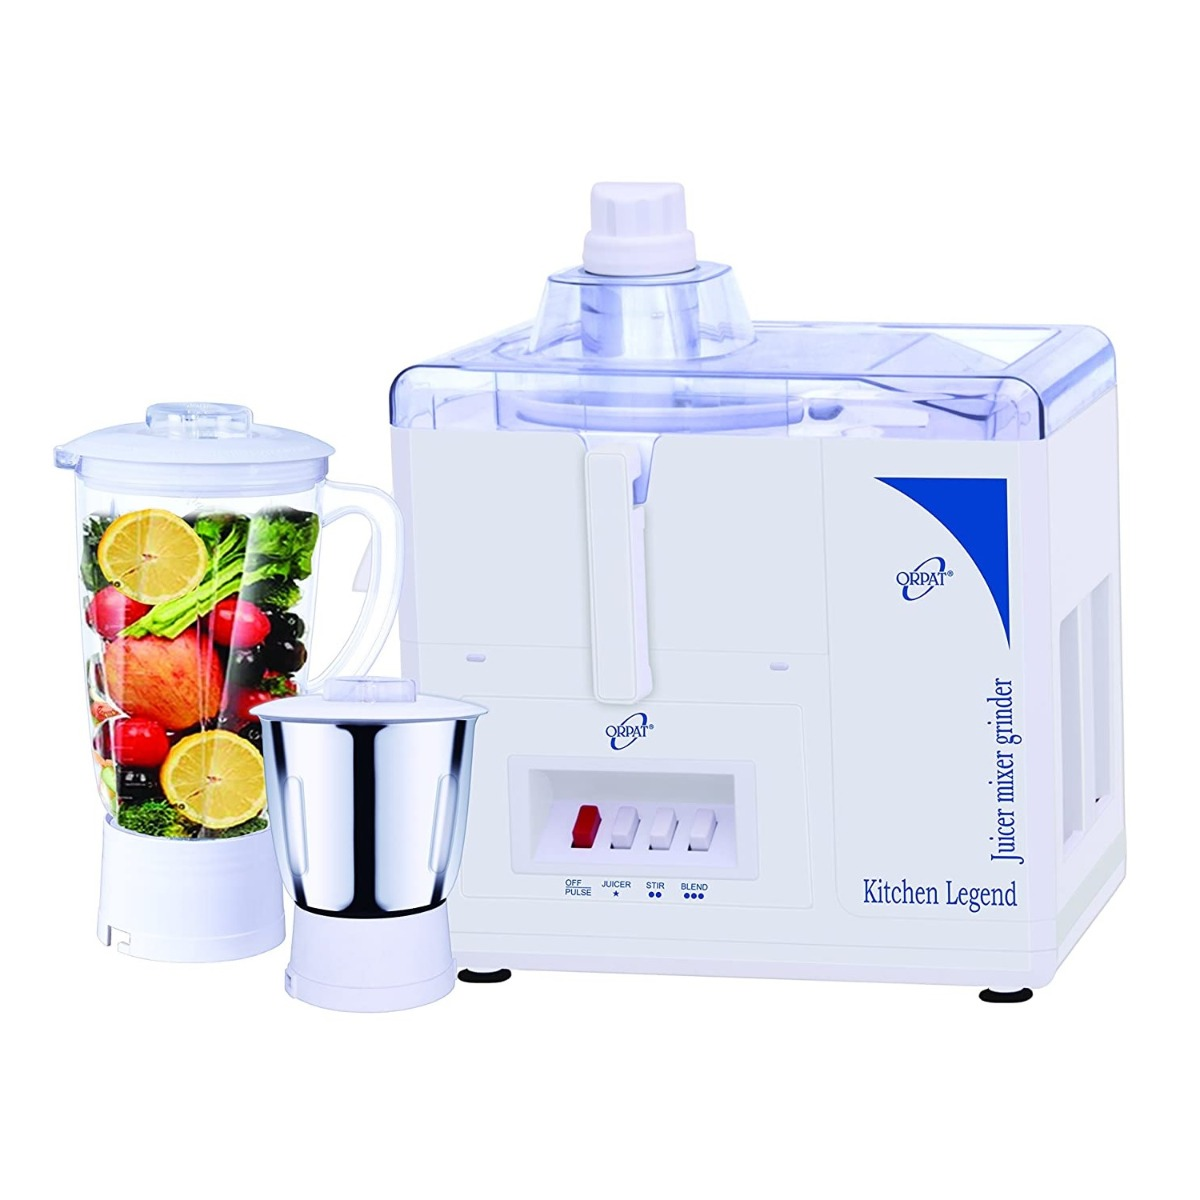 Orpat Mixer Grinder kitchen Legend